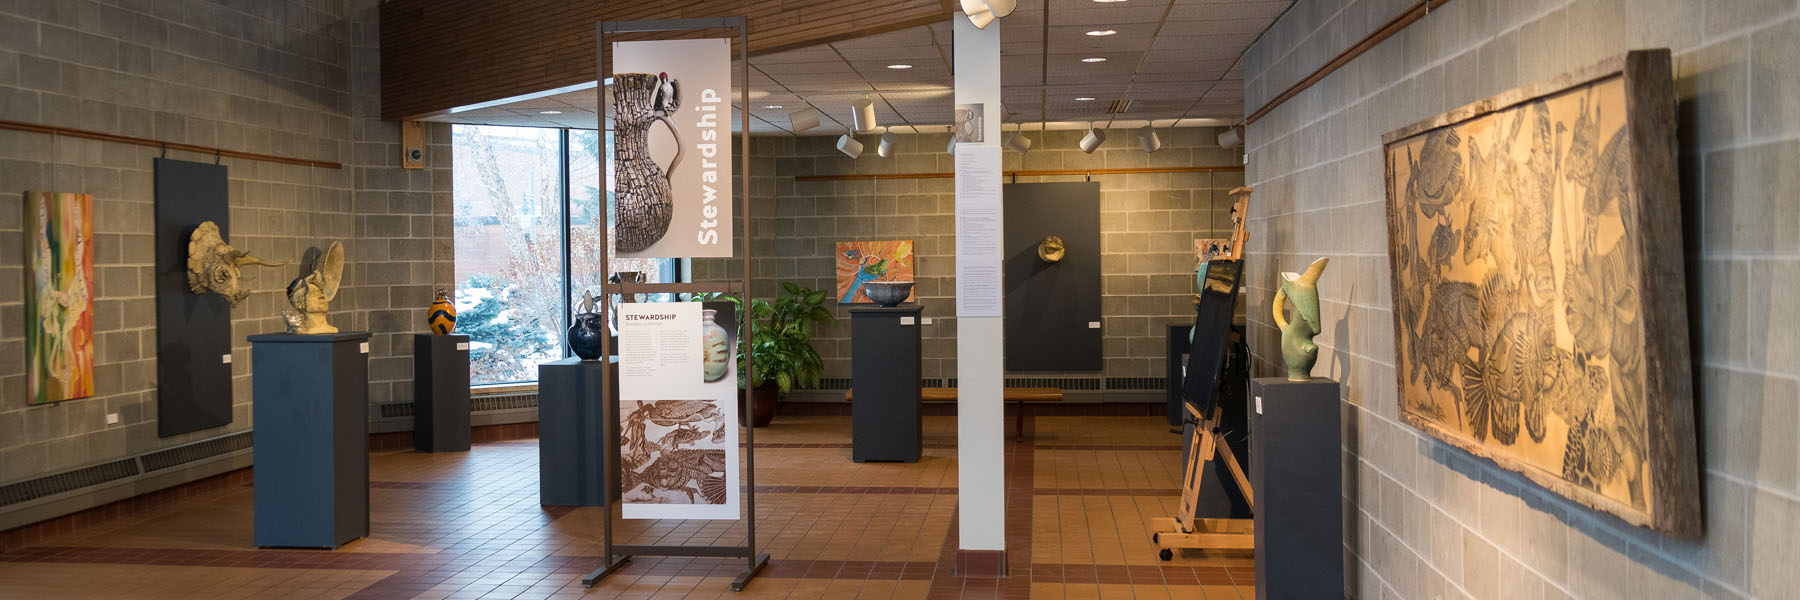 photo showcasing Bethany's gallery space in the Ylvisaker Fine Arts Center